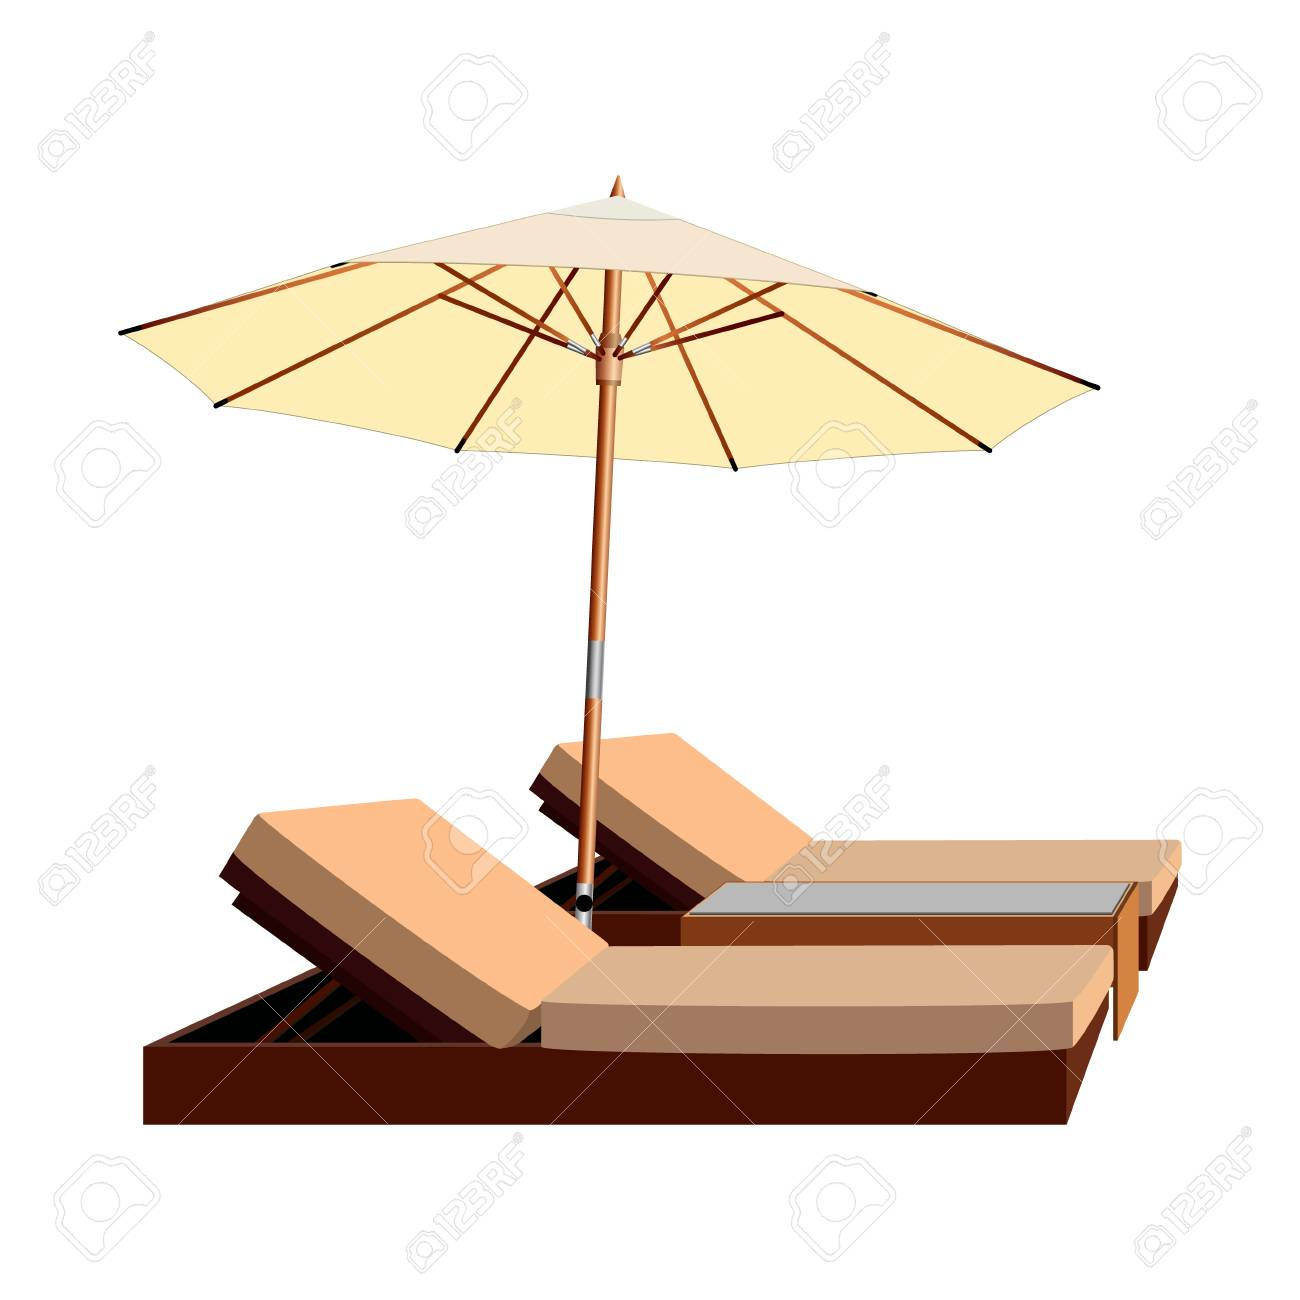 clip cliparts clipart image beach png art free download and chair umbrella chairs